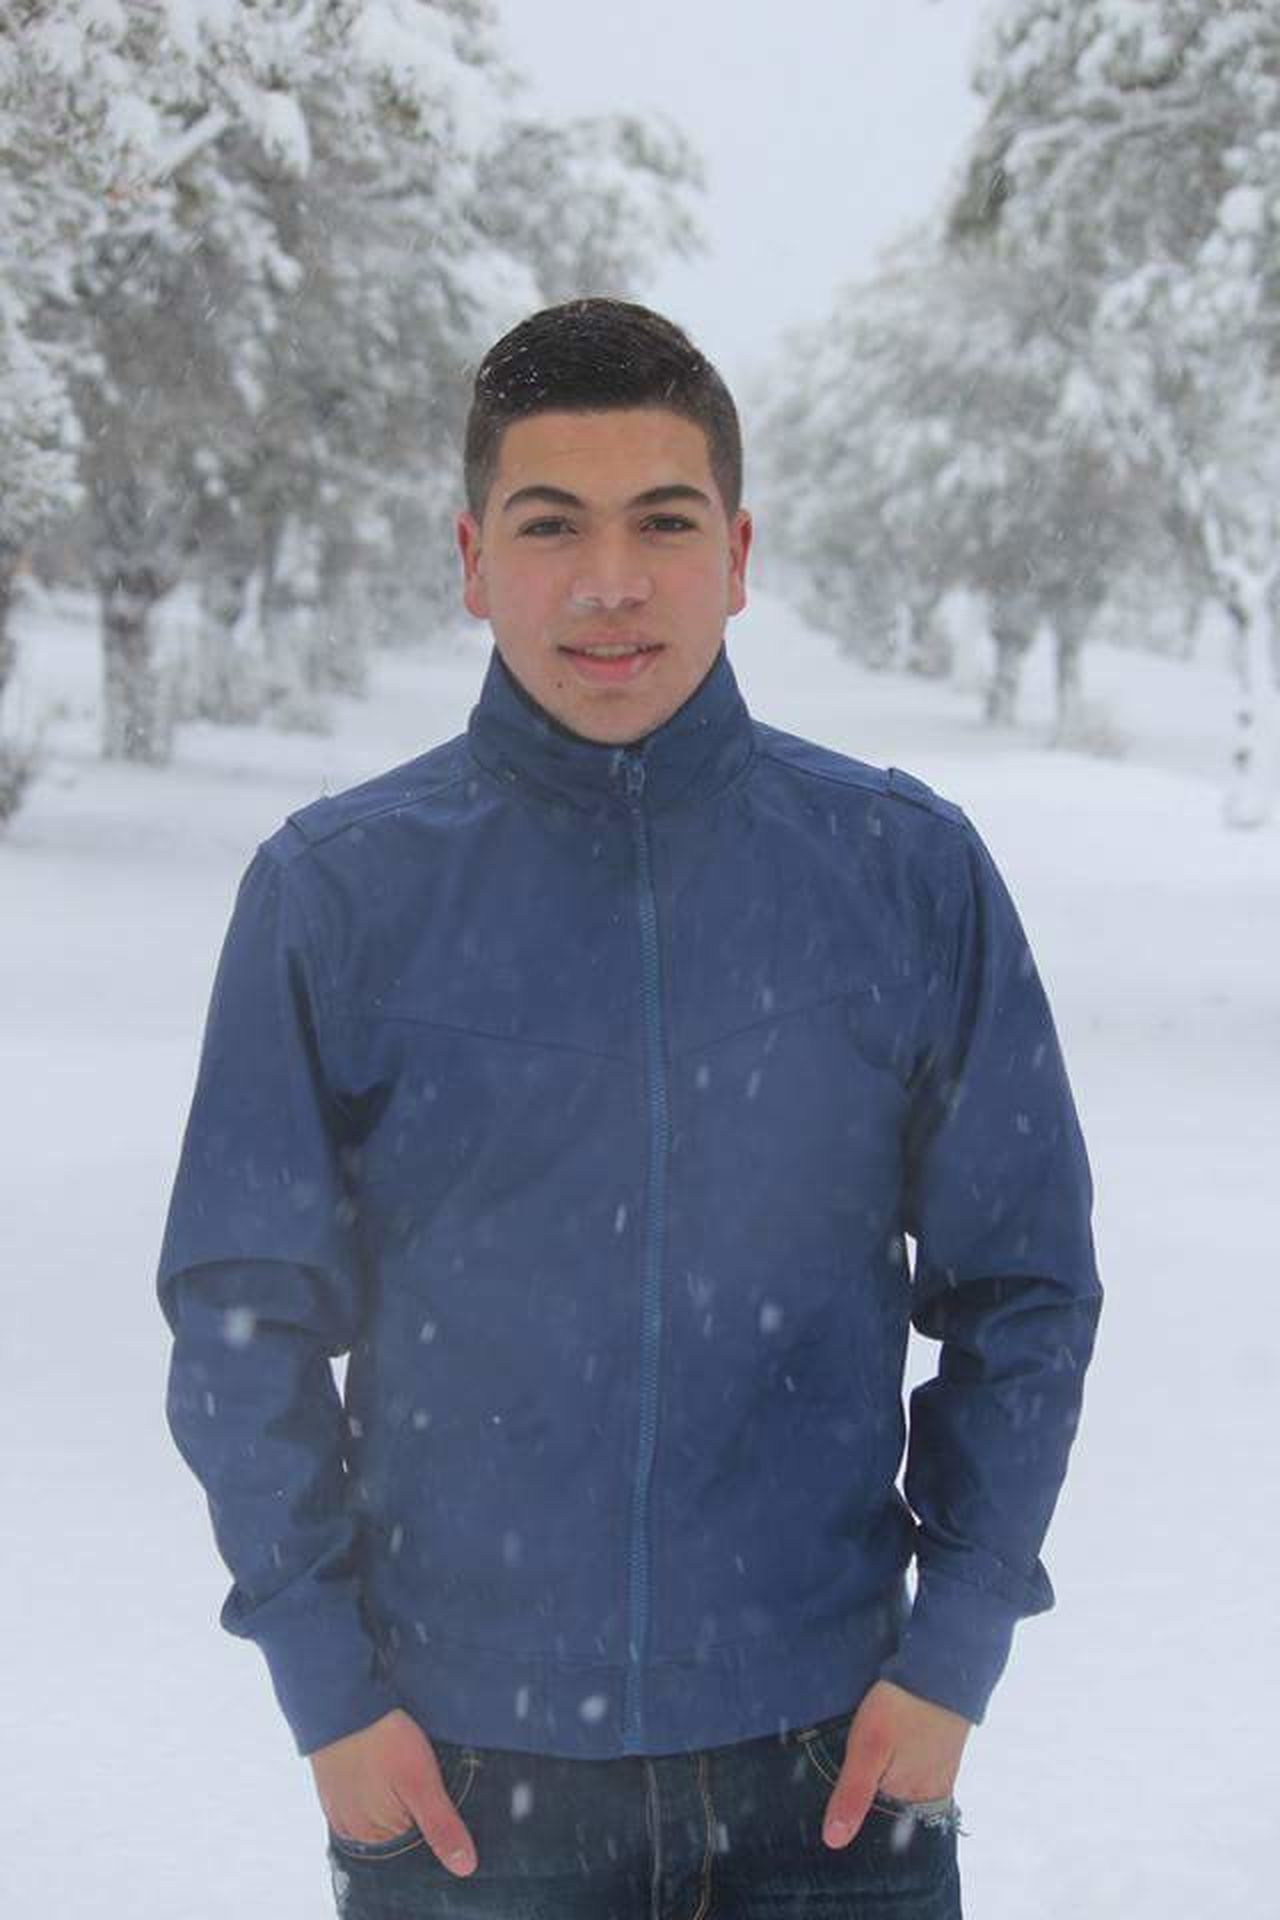 La Naige One Man Only Winter Young Men Snow Portrait People Nature Adult Adults Only Day One Person Front View Only Men Beauty In Nature City Modern Nature Built Structure Architecture First Eyeem Photo Smoke - Physical Structure Blue Close-up Heat - Temperature